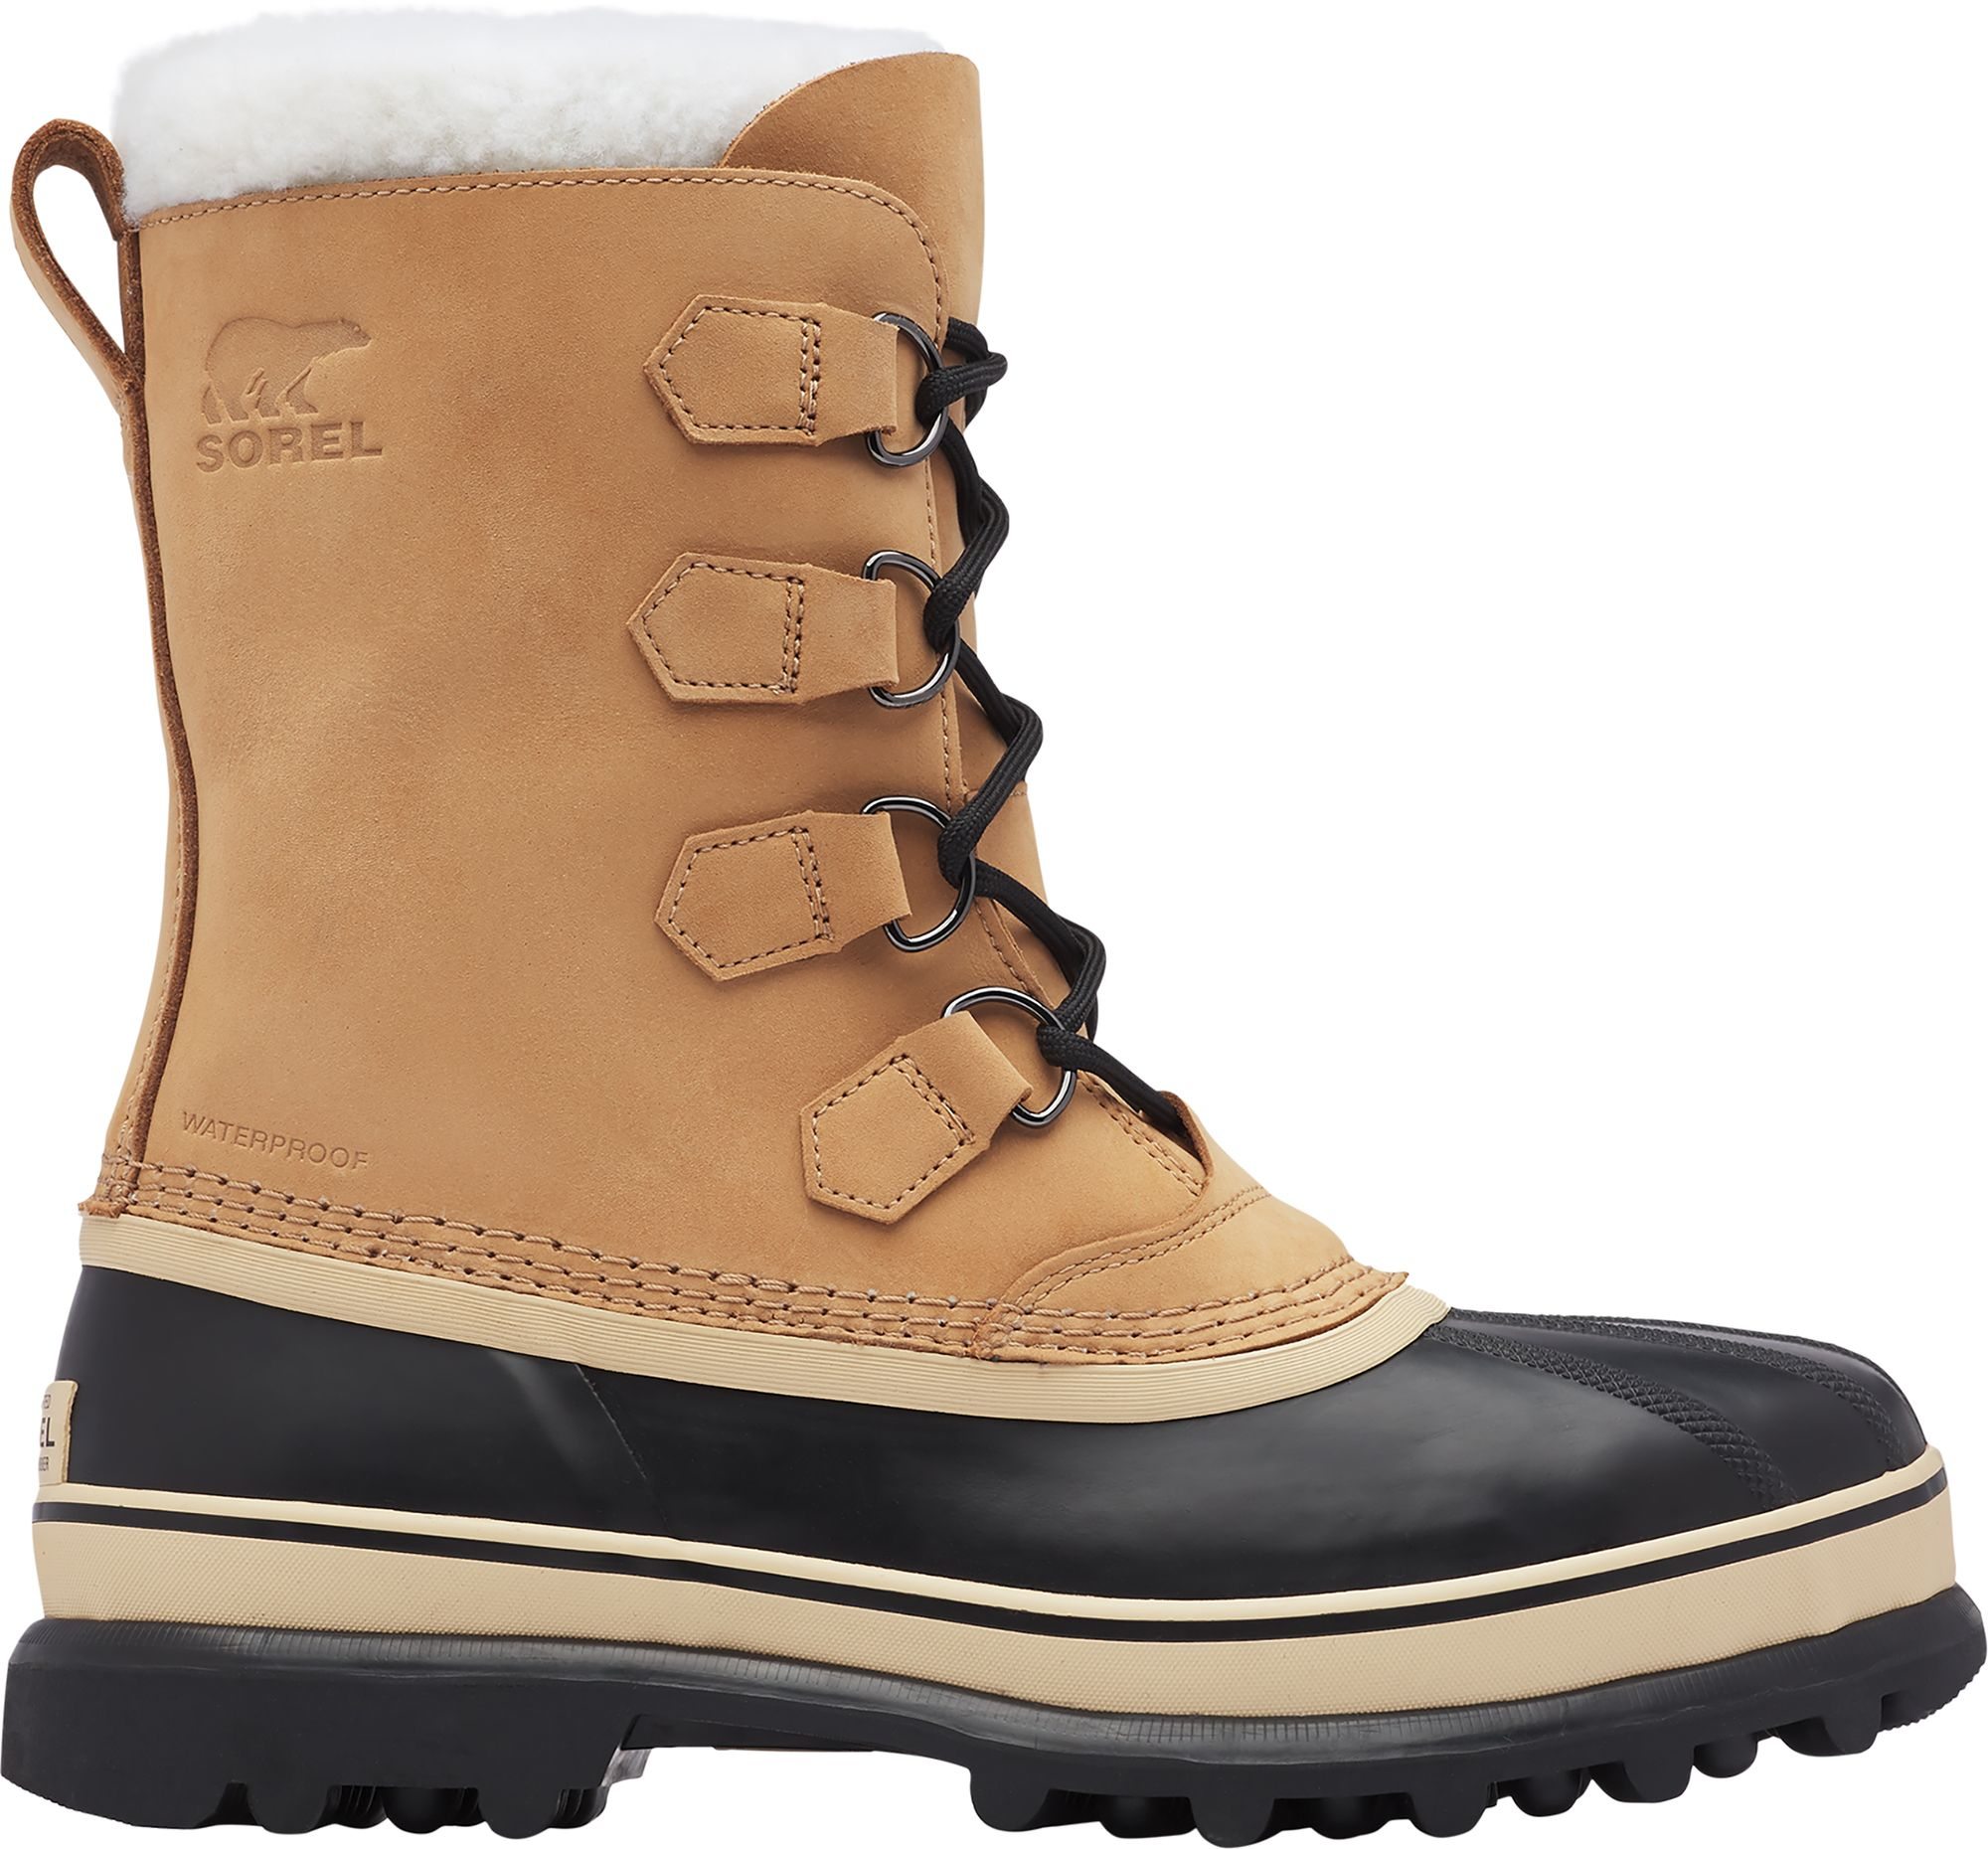 Sorel Caribou Waterproof Boots Manchester Great Sale Cheap Price Outlet Cheapest Outlet Store For Sale 881mweWvYx